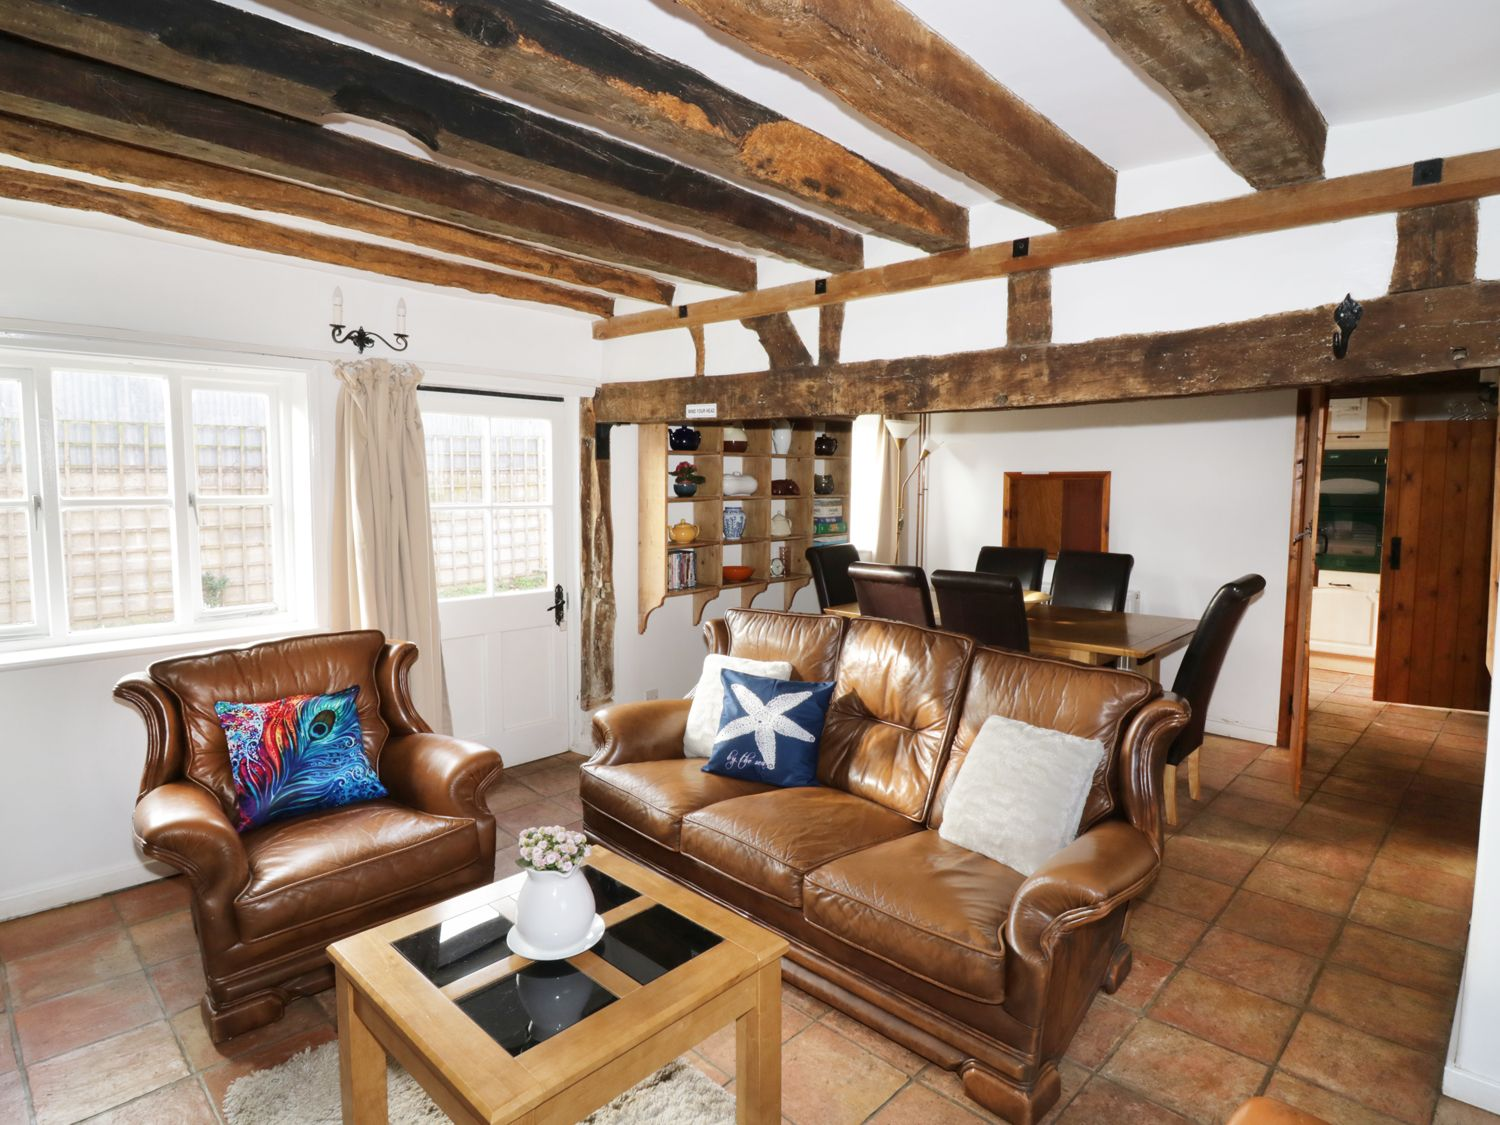 Holiday Cottages in Suffolk: St, Michael's Cottage, South Elmham | sykescottages.co.uk